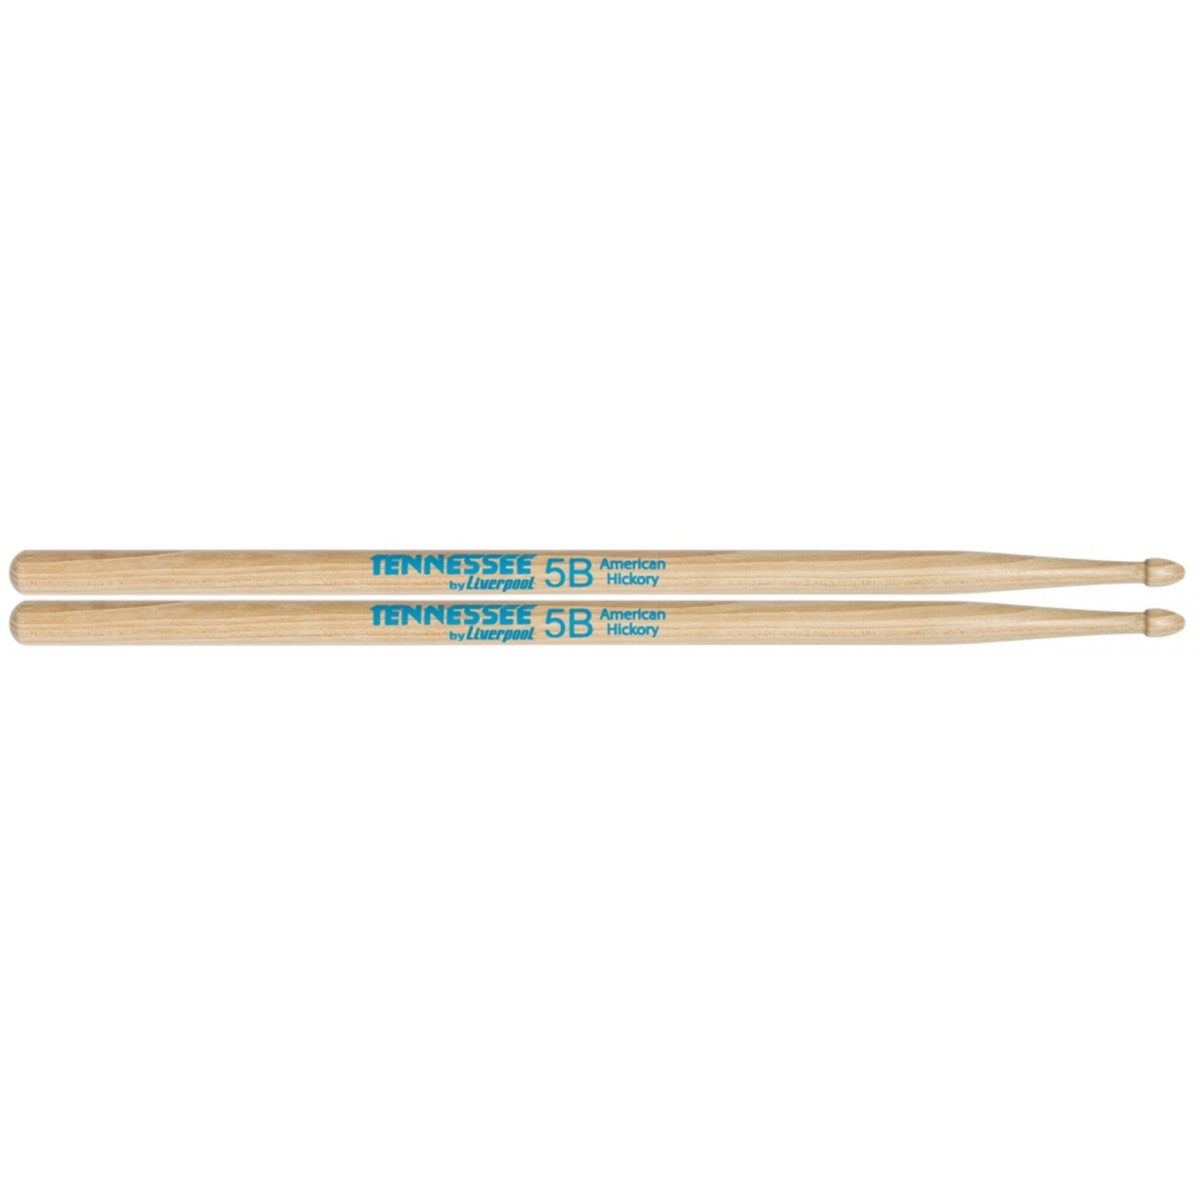 Baqueta Tennessee American Hickory Liverpool TNHY-5BM